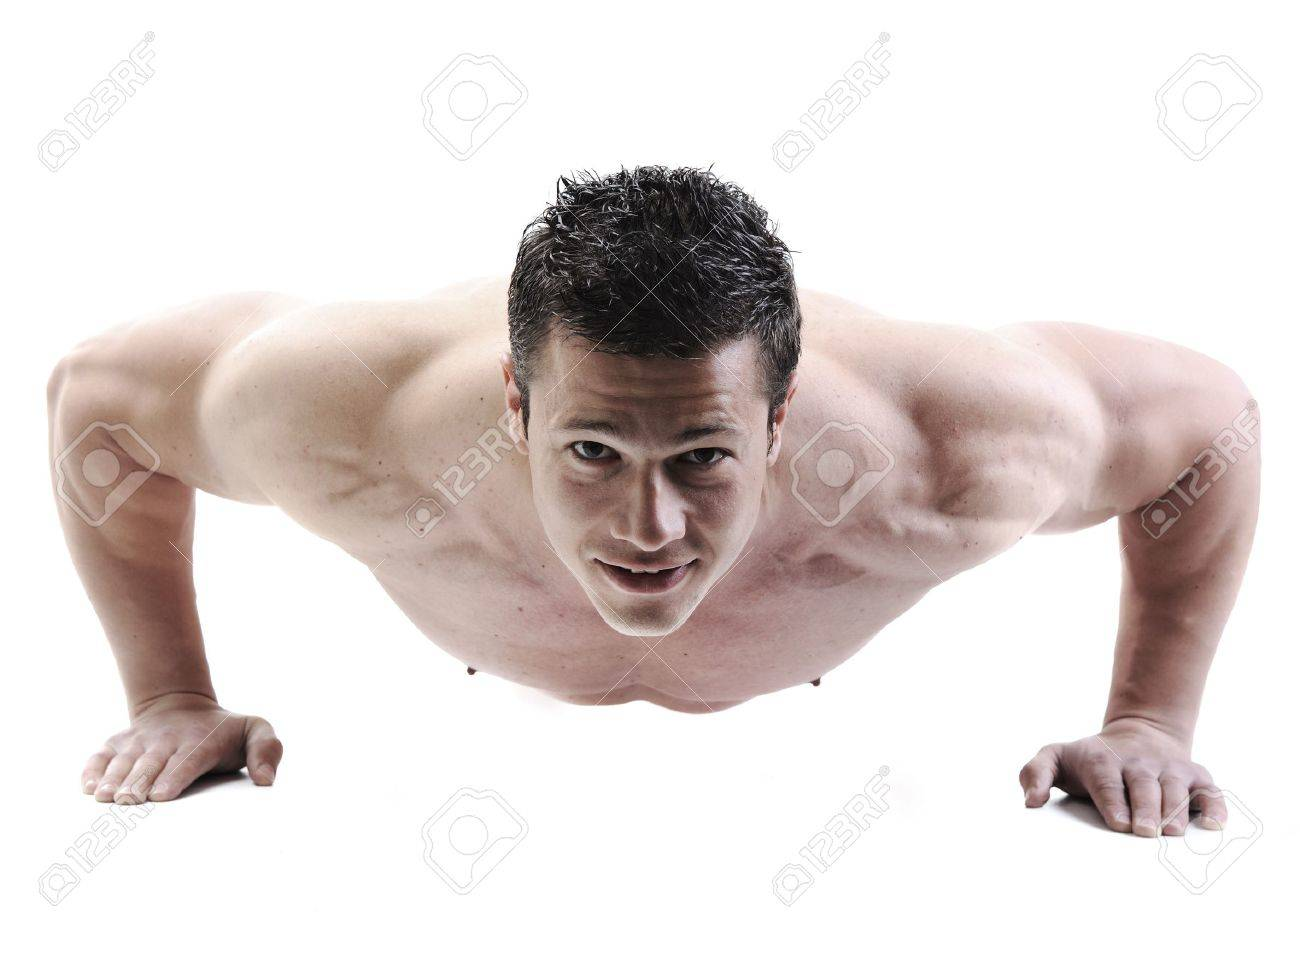 The Perfect male body - Awesome bodybuilder posing Stock Photo - 10316908